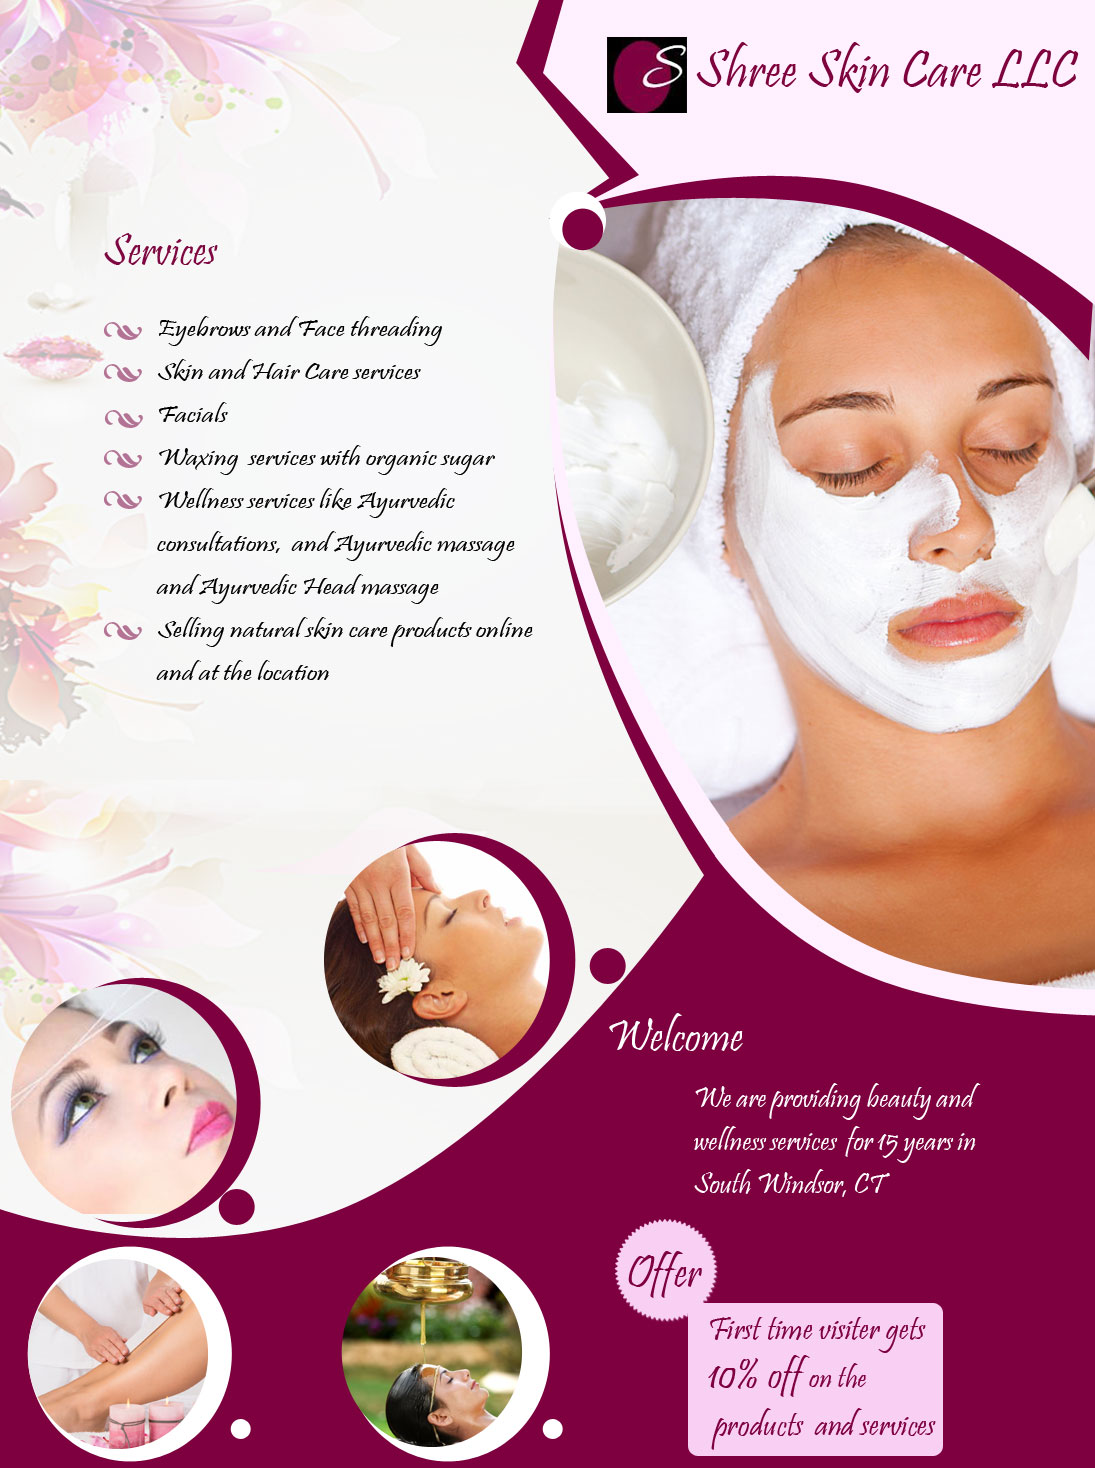 Shree Skin Care Llc Beauty Salon South Windsor Ct Sulekha